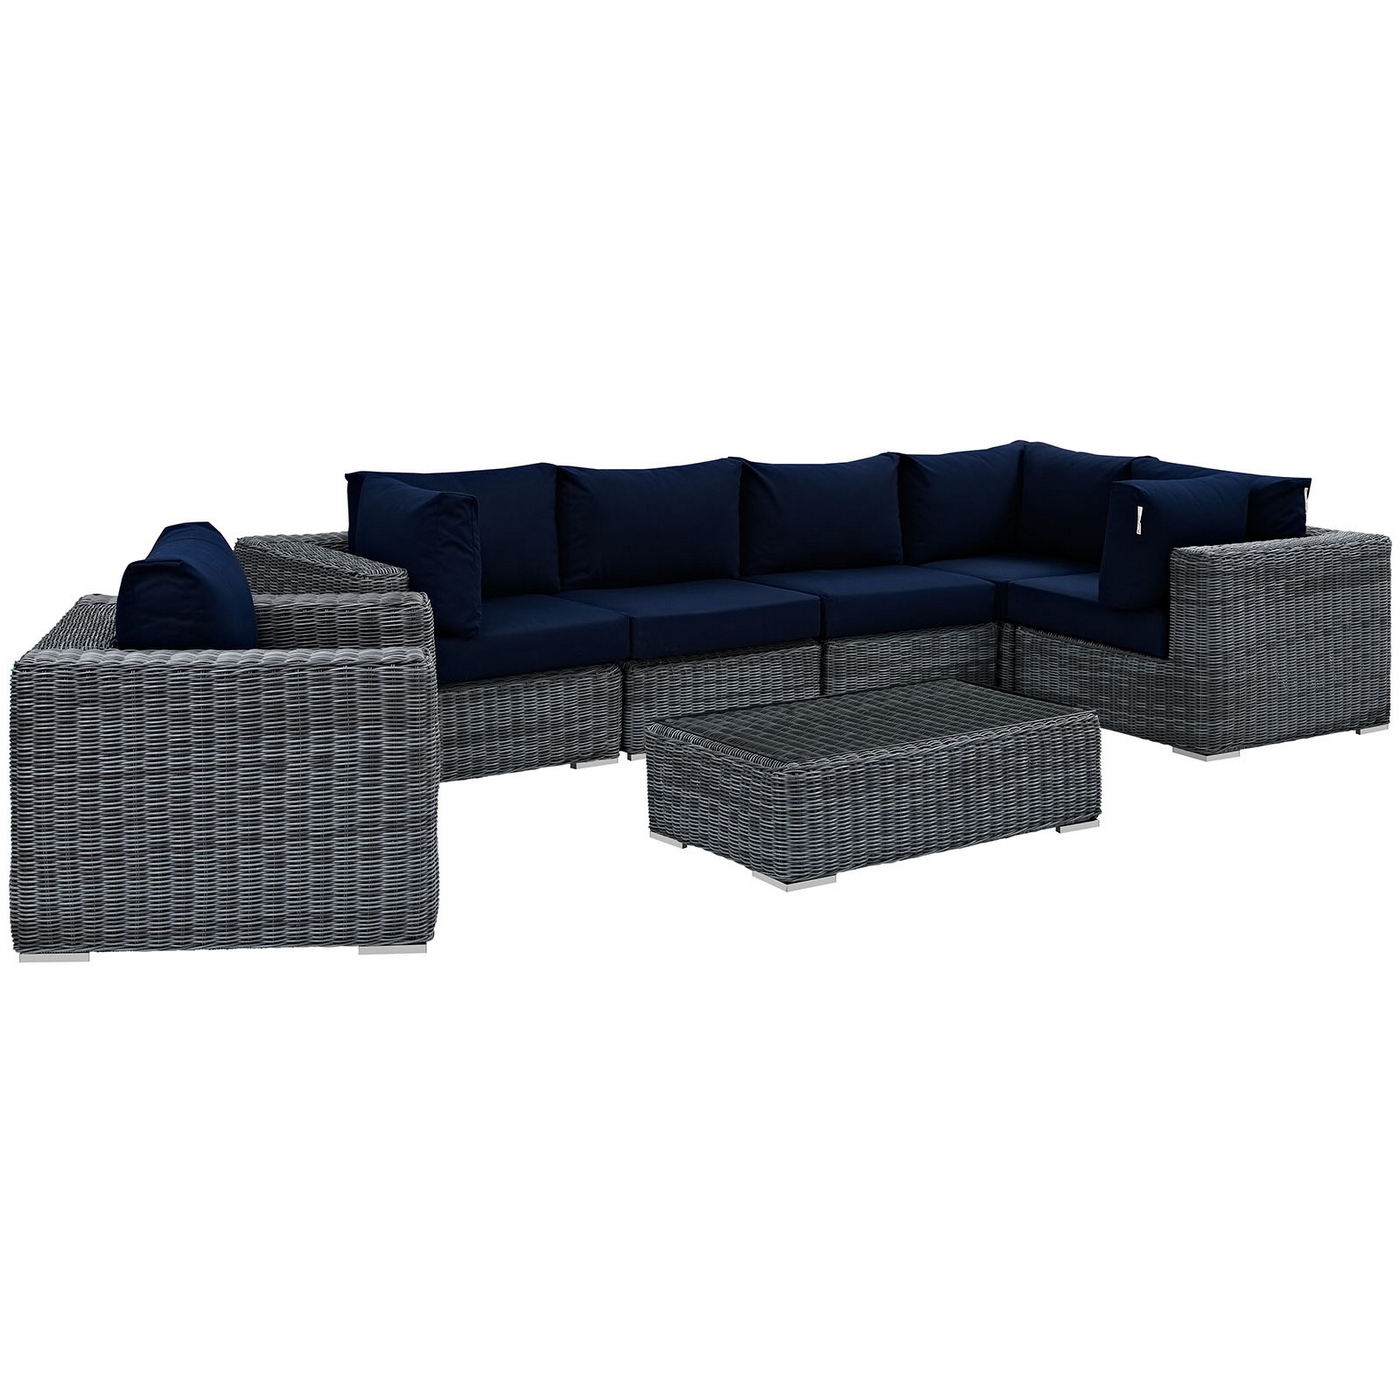 Terrific Details About Summon Rattan 7 Piece Patio Sunbrella Sectional Sofa Set W Cushions Navy Blue Cjindustries Chair Design For Home Cjindustriesco